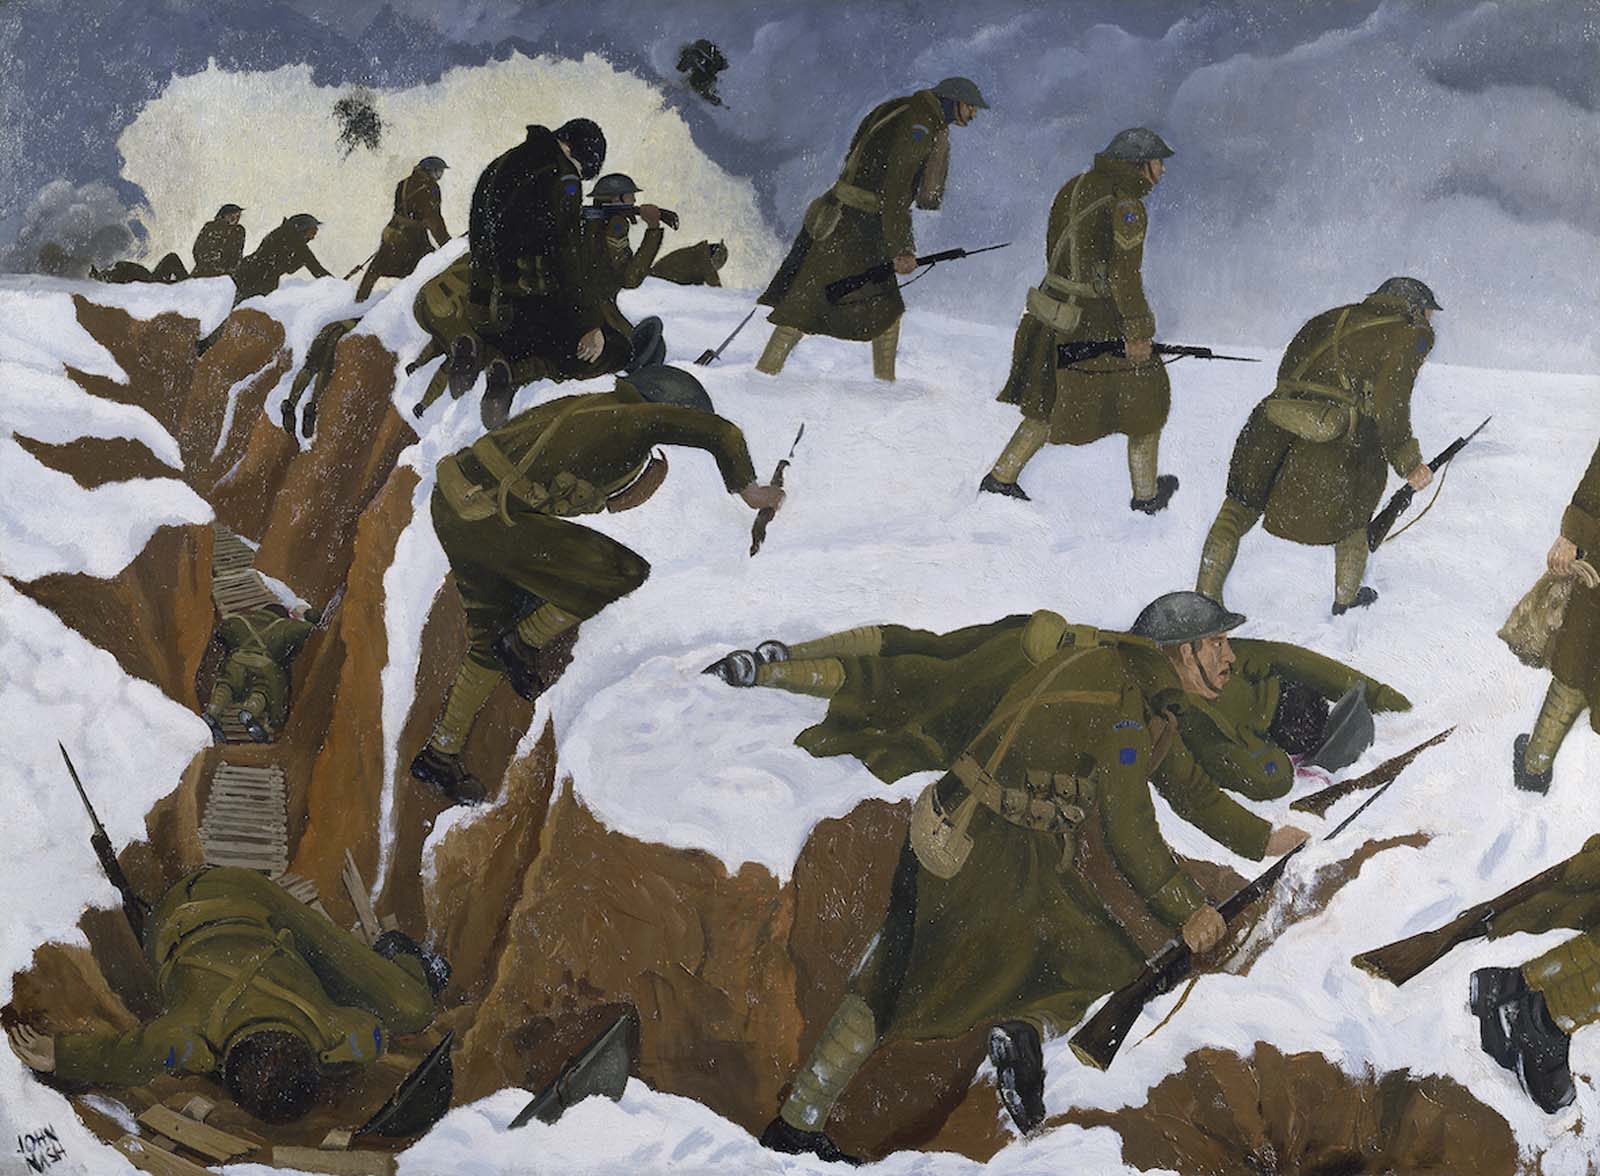 painting of soldiers climbing out of a trench into snow covered landscape with some of them lying dead and explosions in the distance